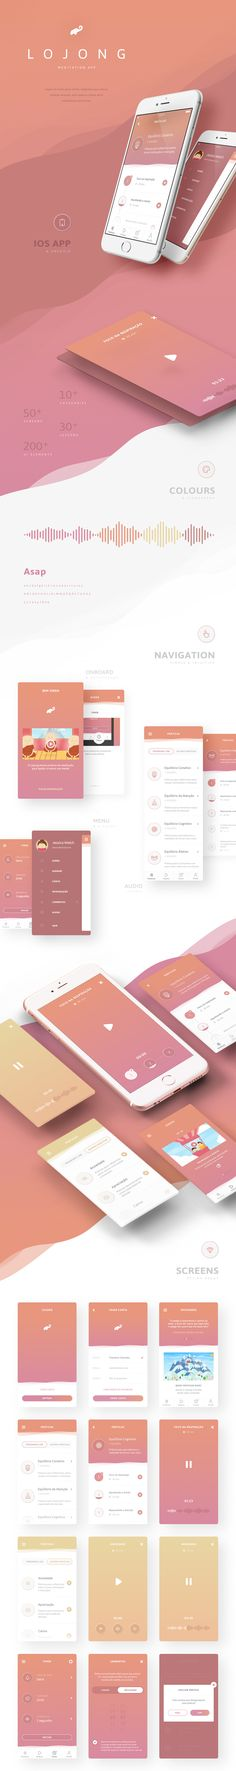 Lojong Meditation App on Behance